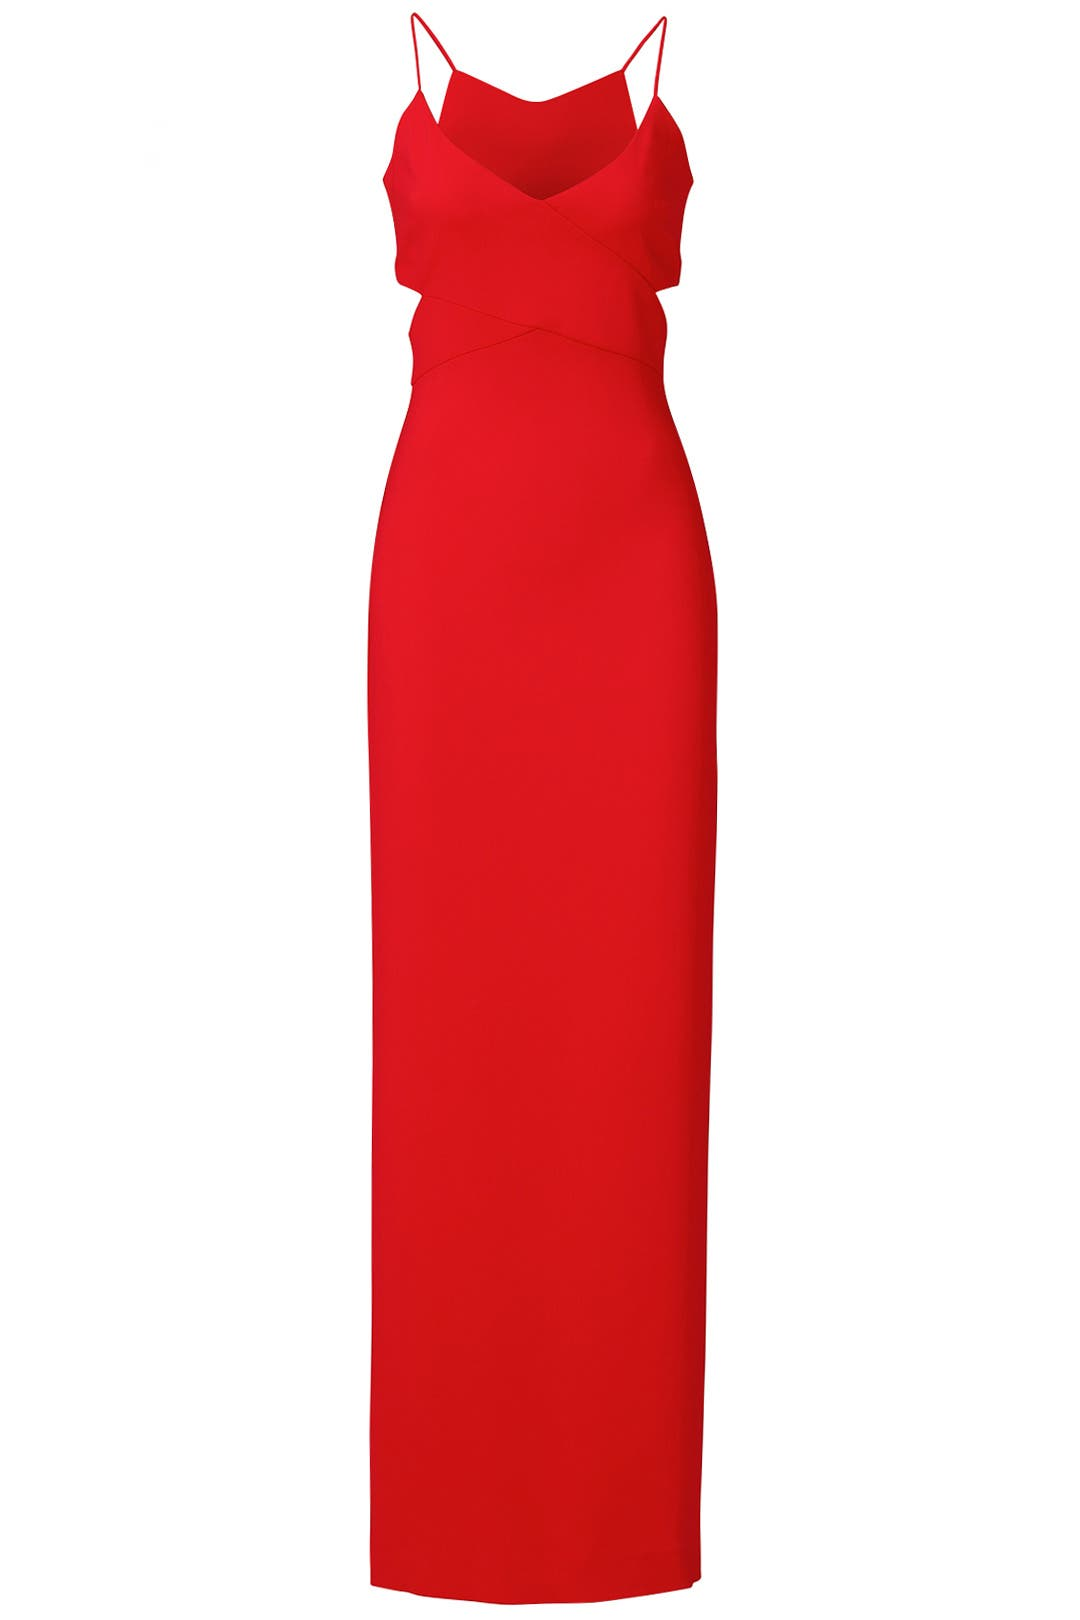 Badgley Mischka Woman Knotted Crepe Gown Red Size 0 Badgley Mischka